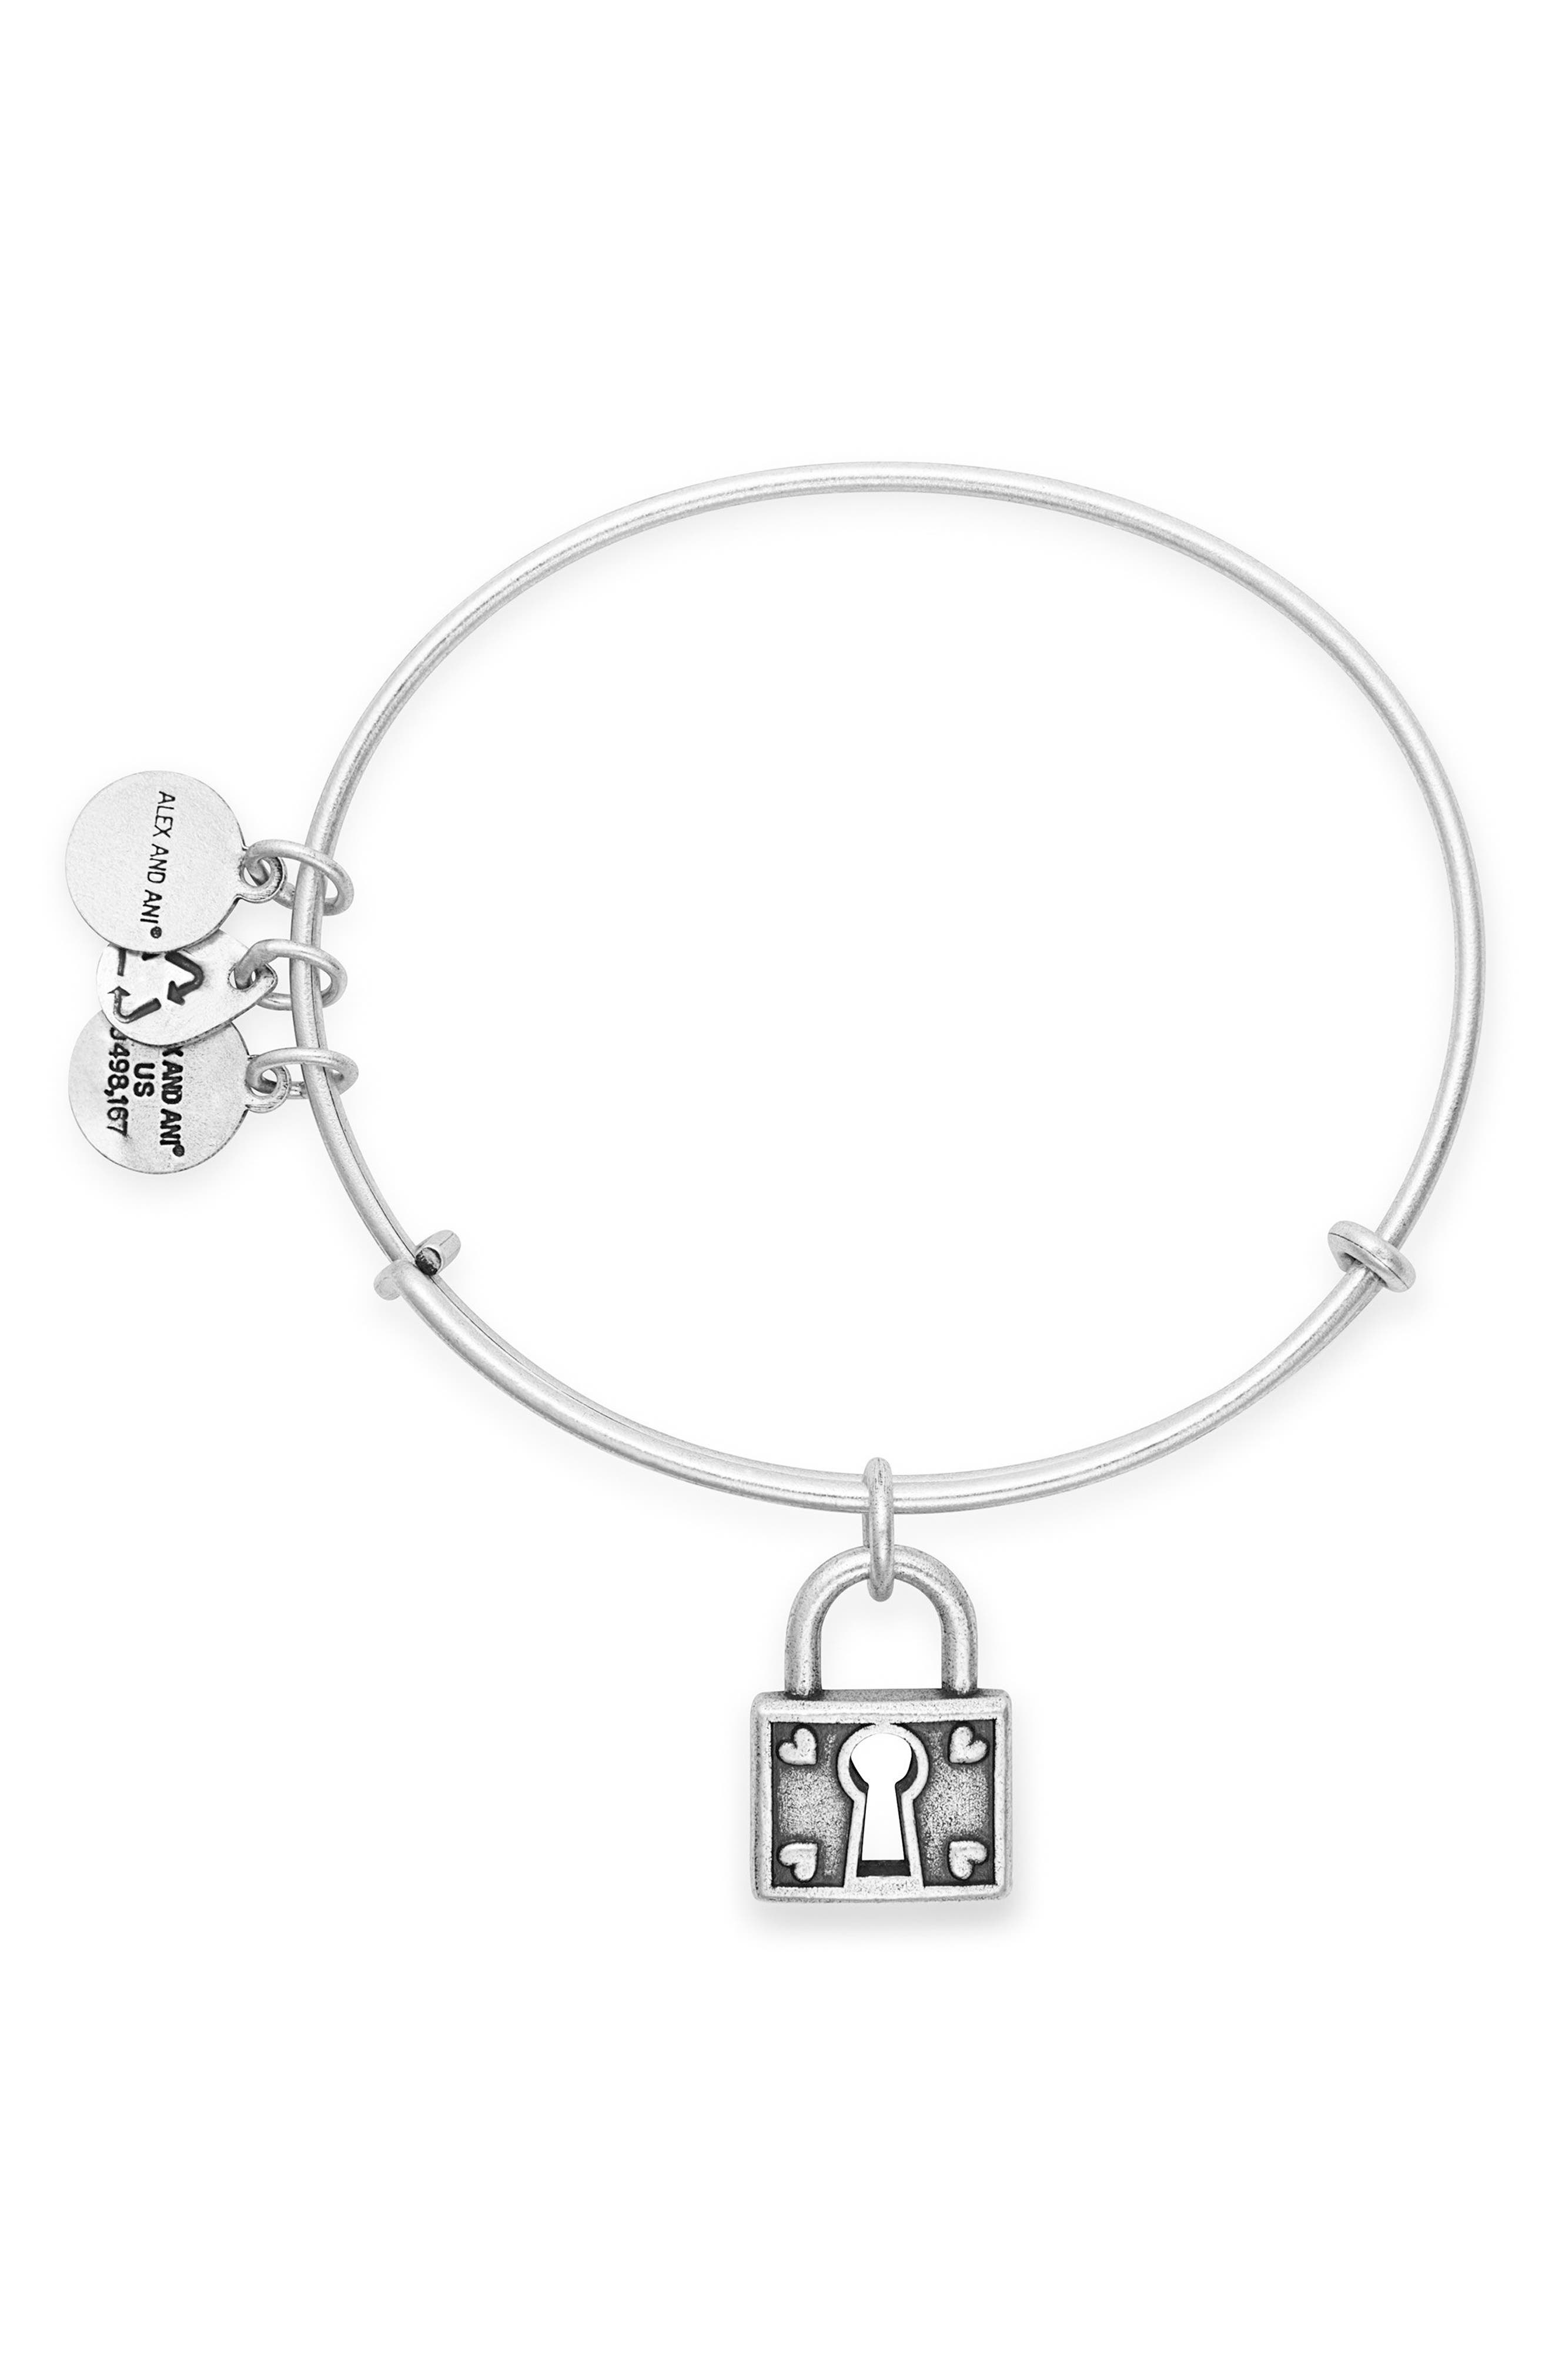 Unbreakable Love Adjustable Wire Bangle,                             Alternate thumbnail 2, color,                             SILVER